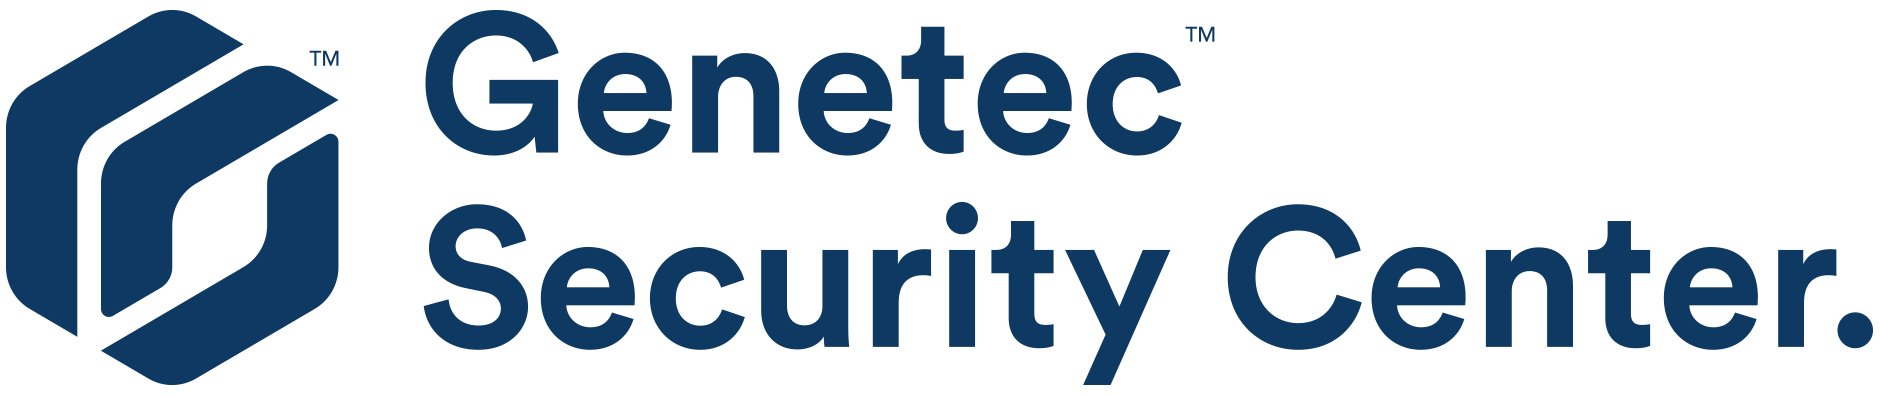 GENETEC security center